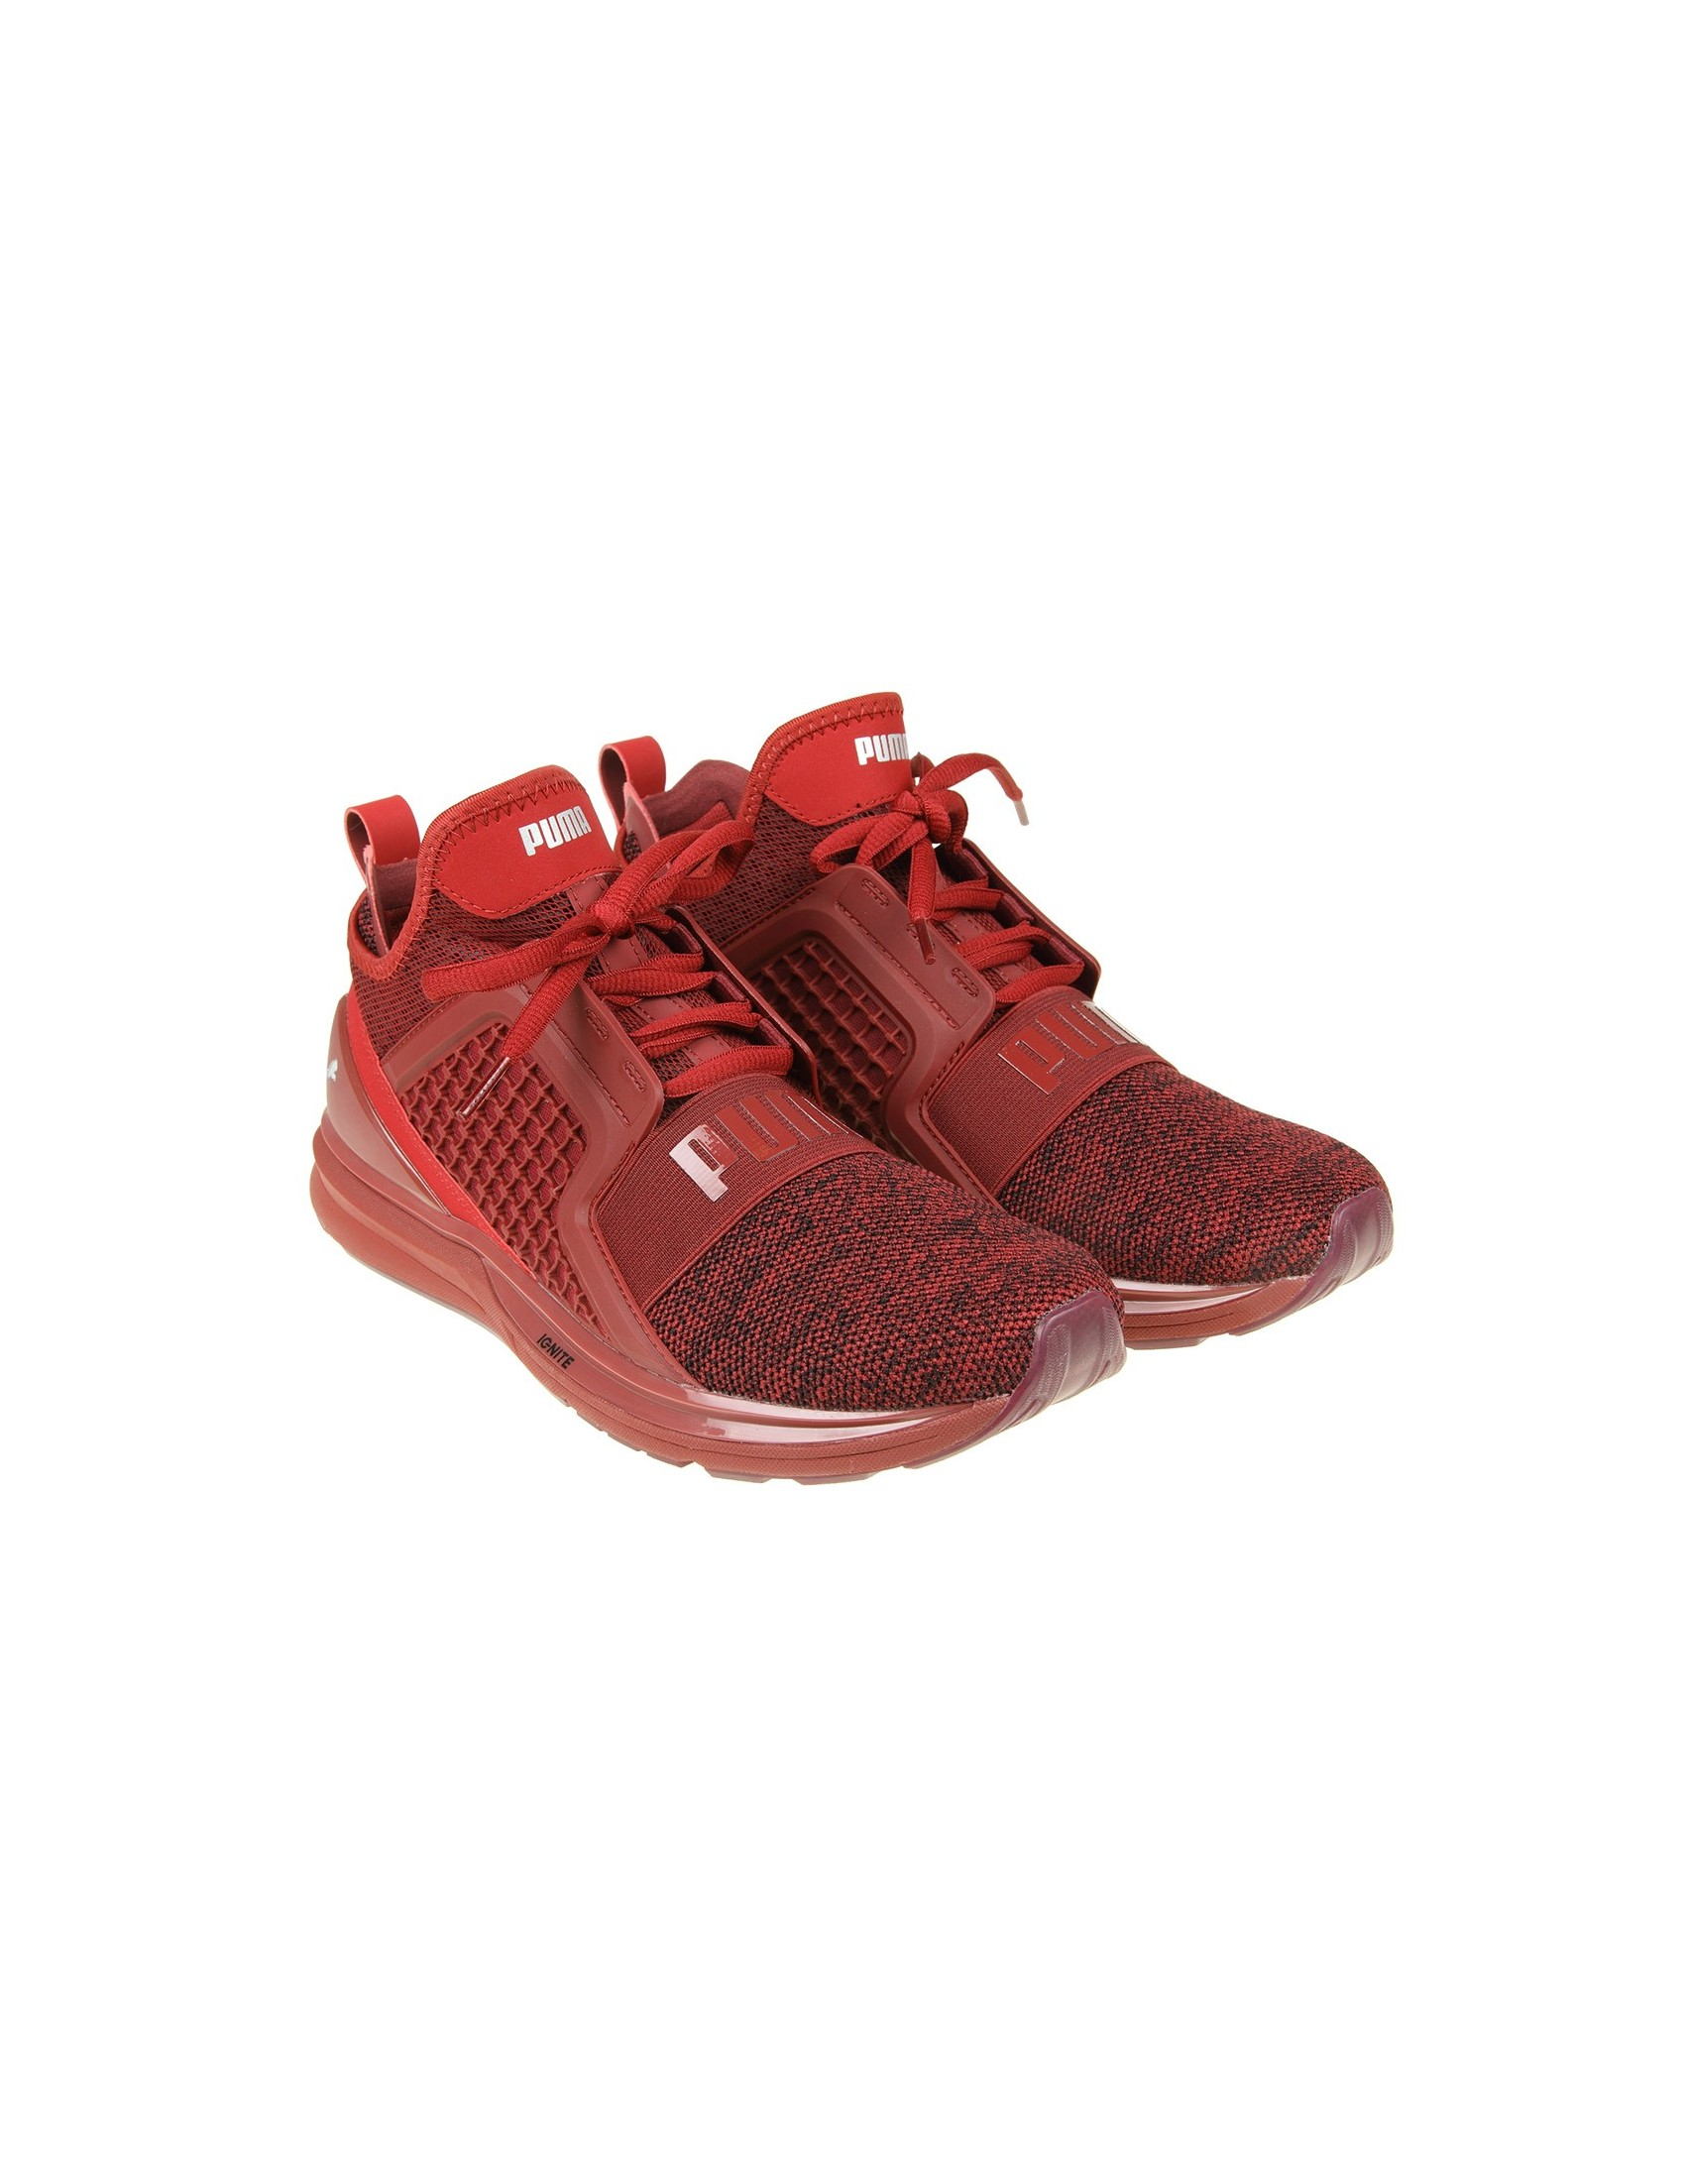 772163996bbf puma-sneakers-ignite-limitless-red-color.jpg